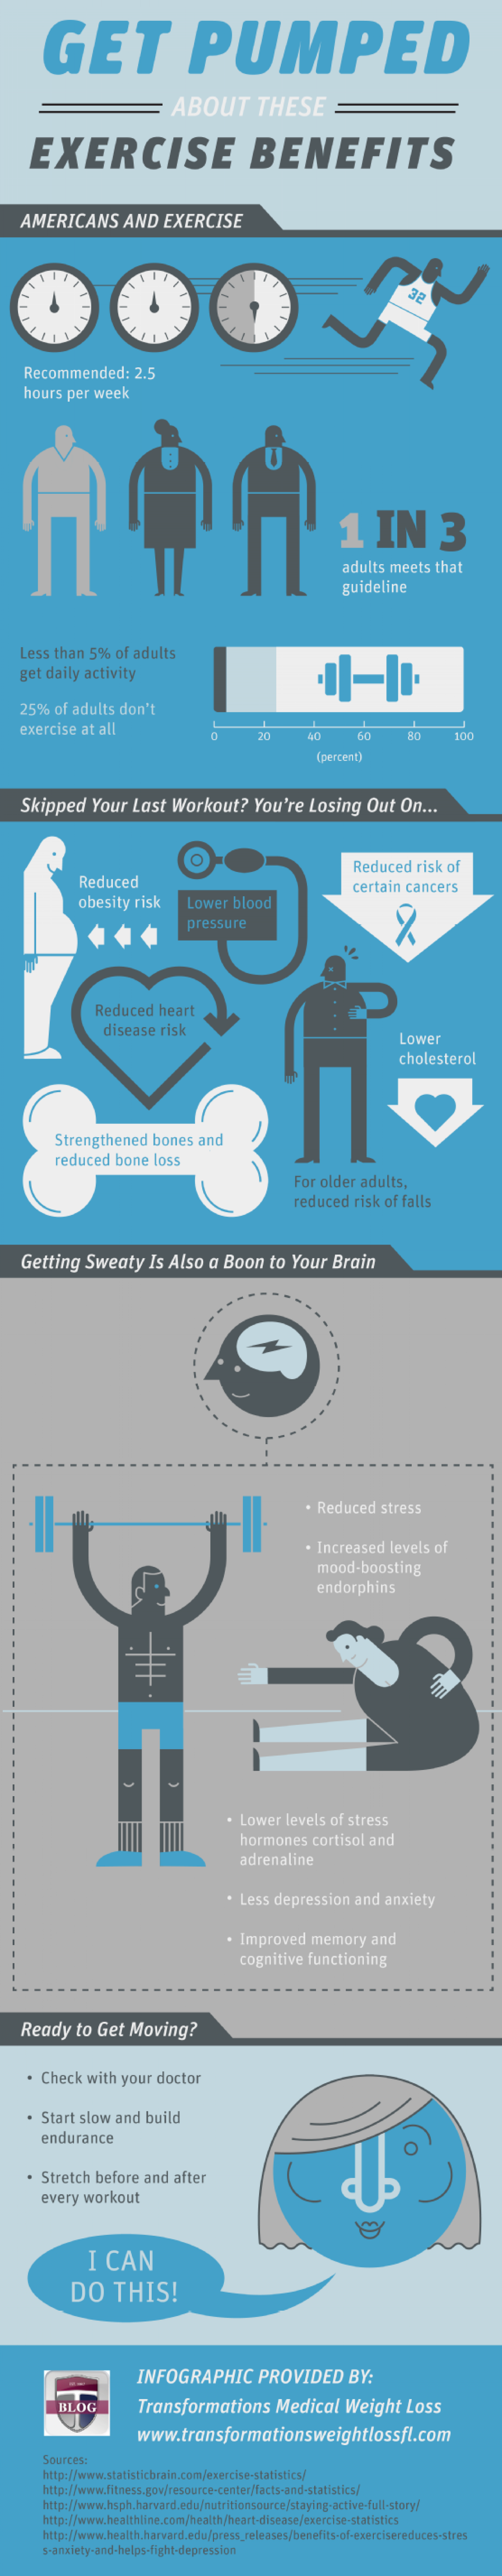 Get Pumped About These Exercise Benefits  Infographic